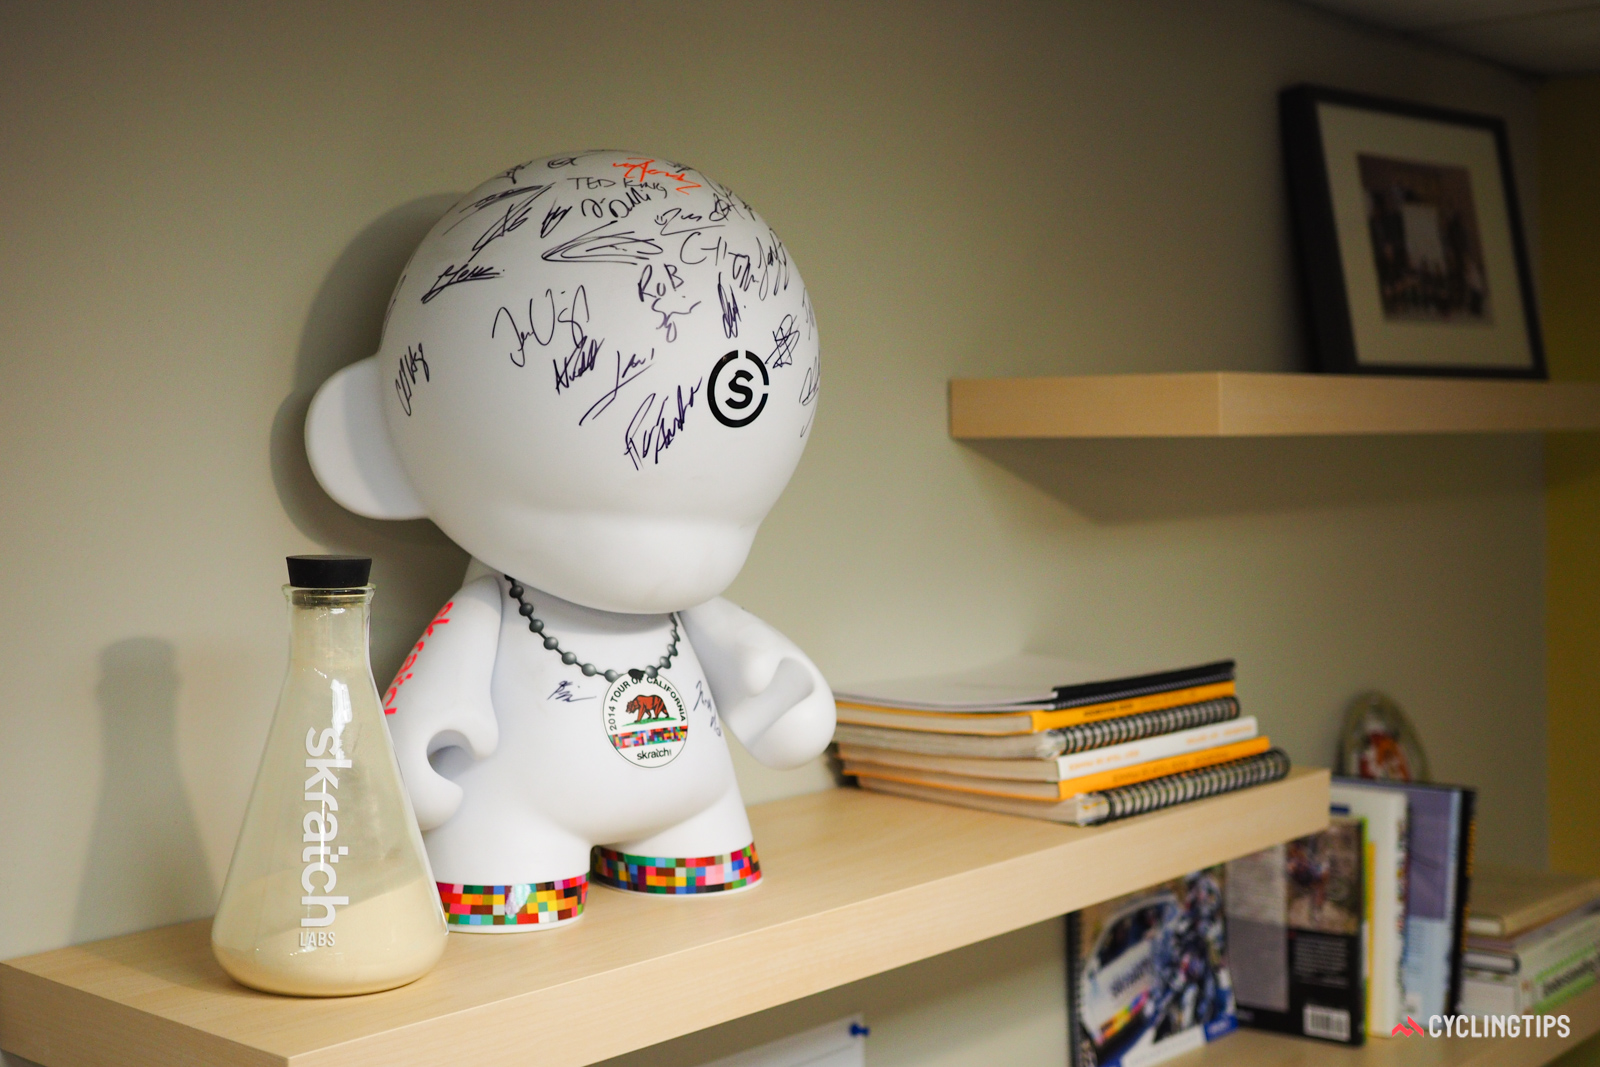 The Skratch Labs office in Boulder, Colorado bears all sorts of whimsical decorations. Photo: James Huang.